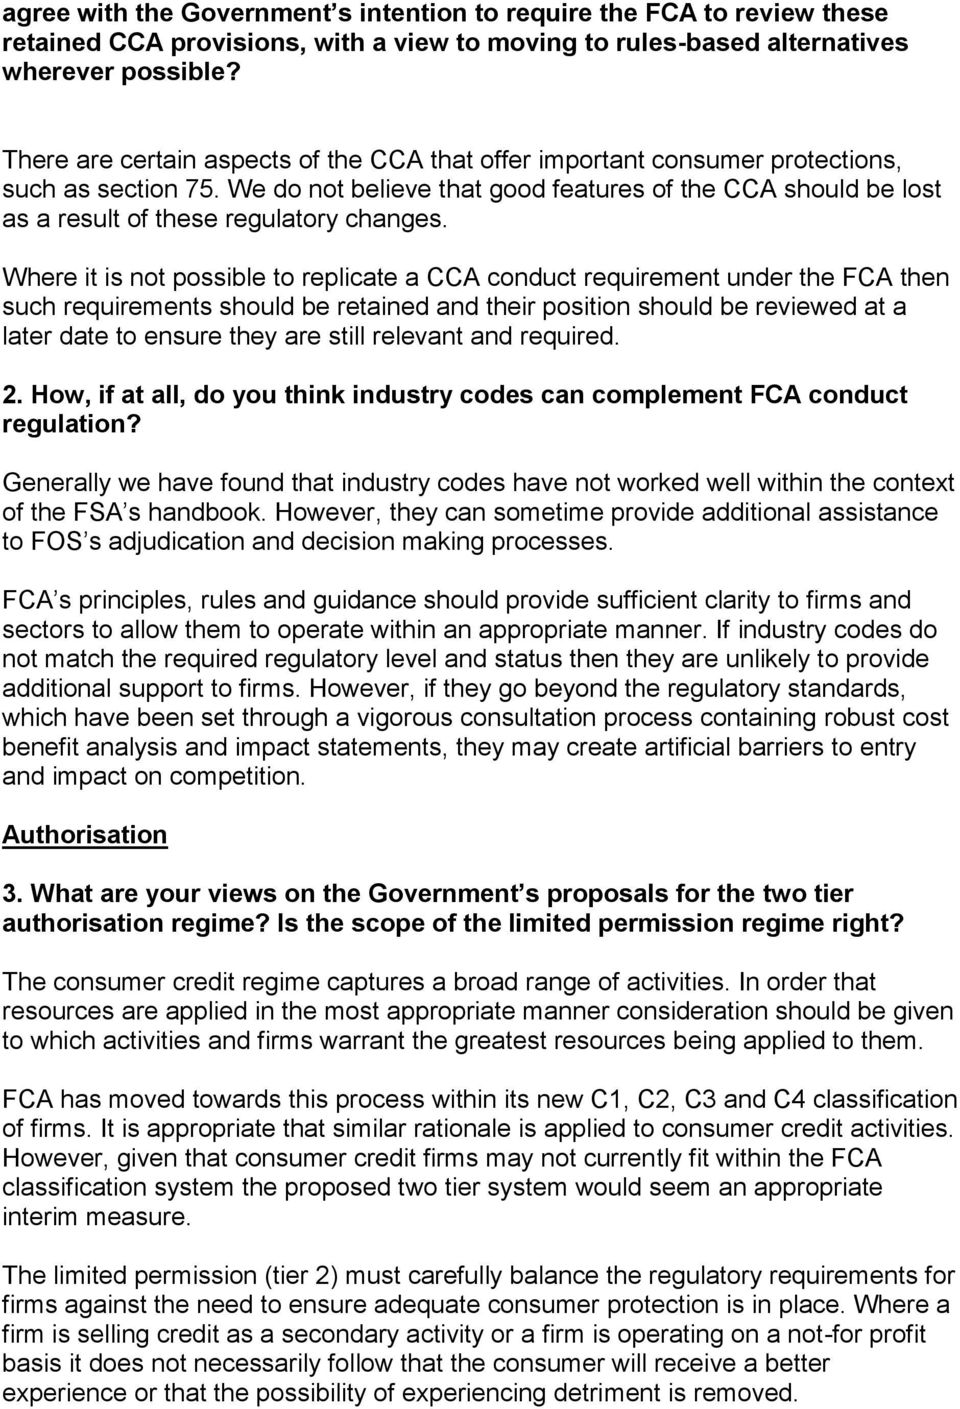 We do not believe that good features of the CCA should be lost as a result of these regulatory changes.